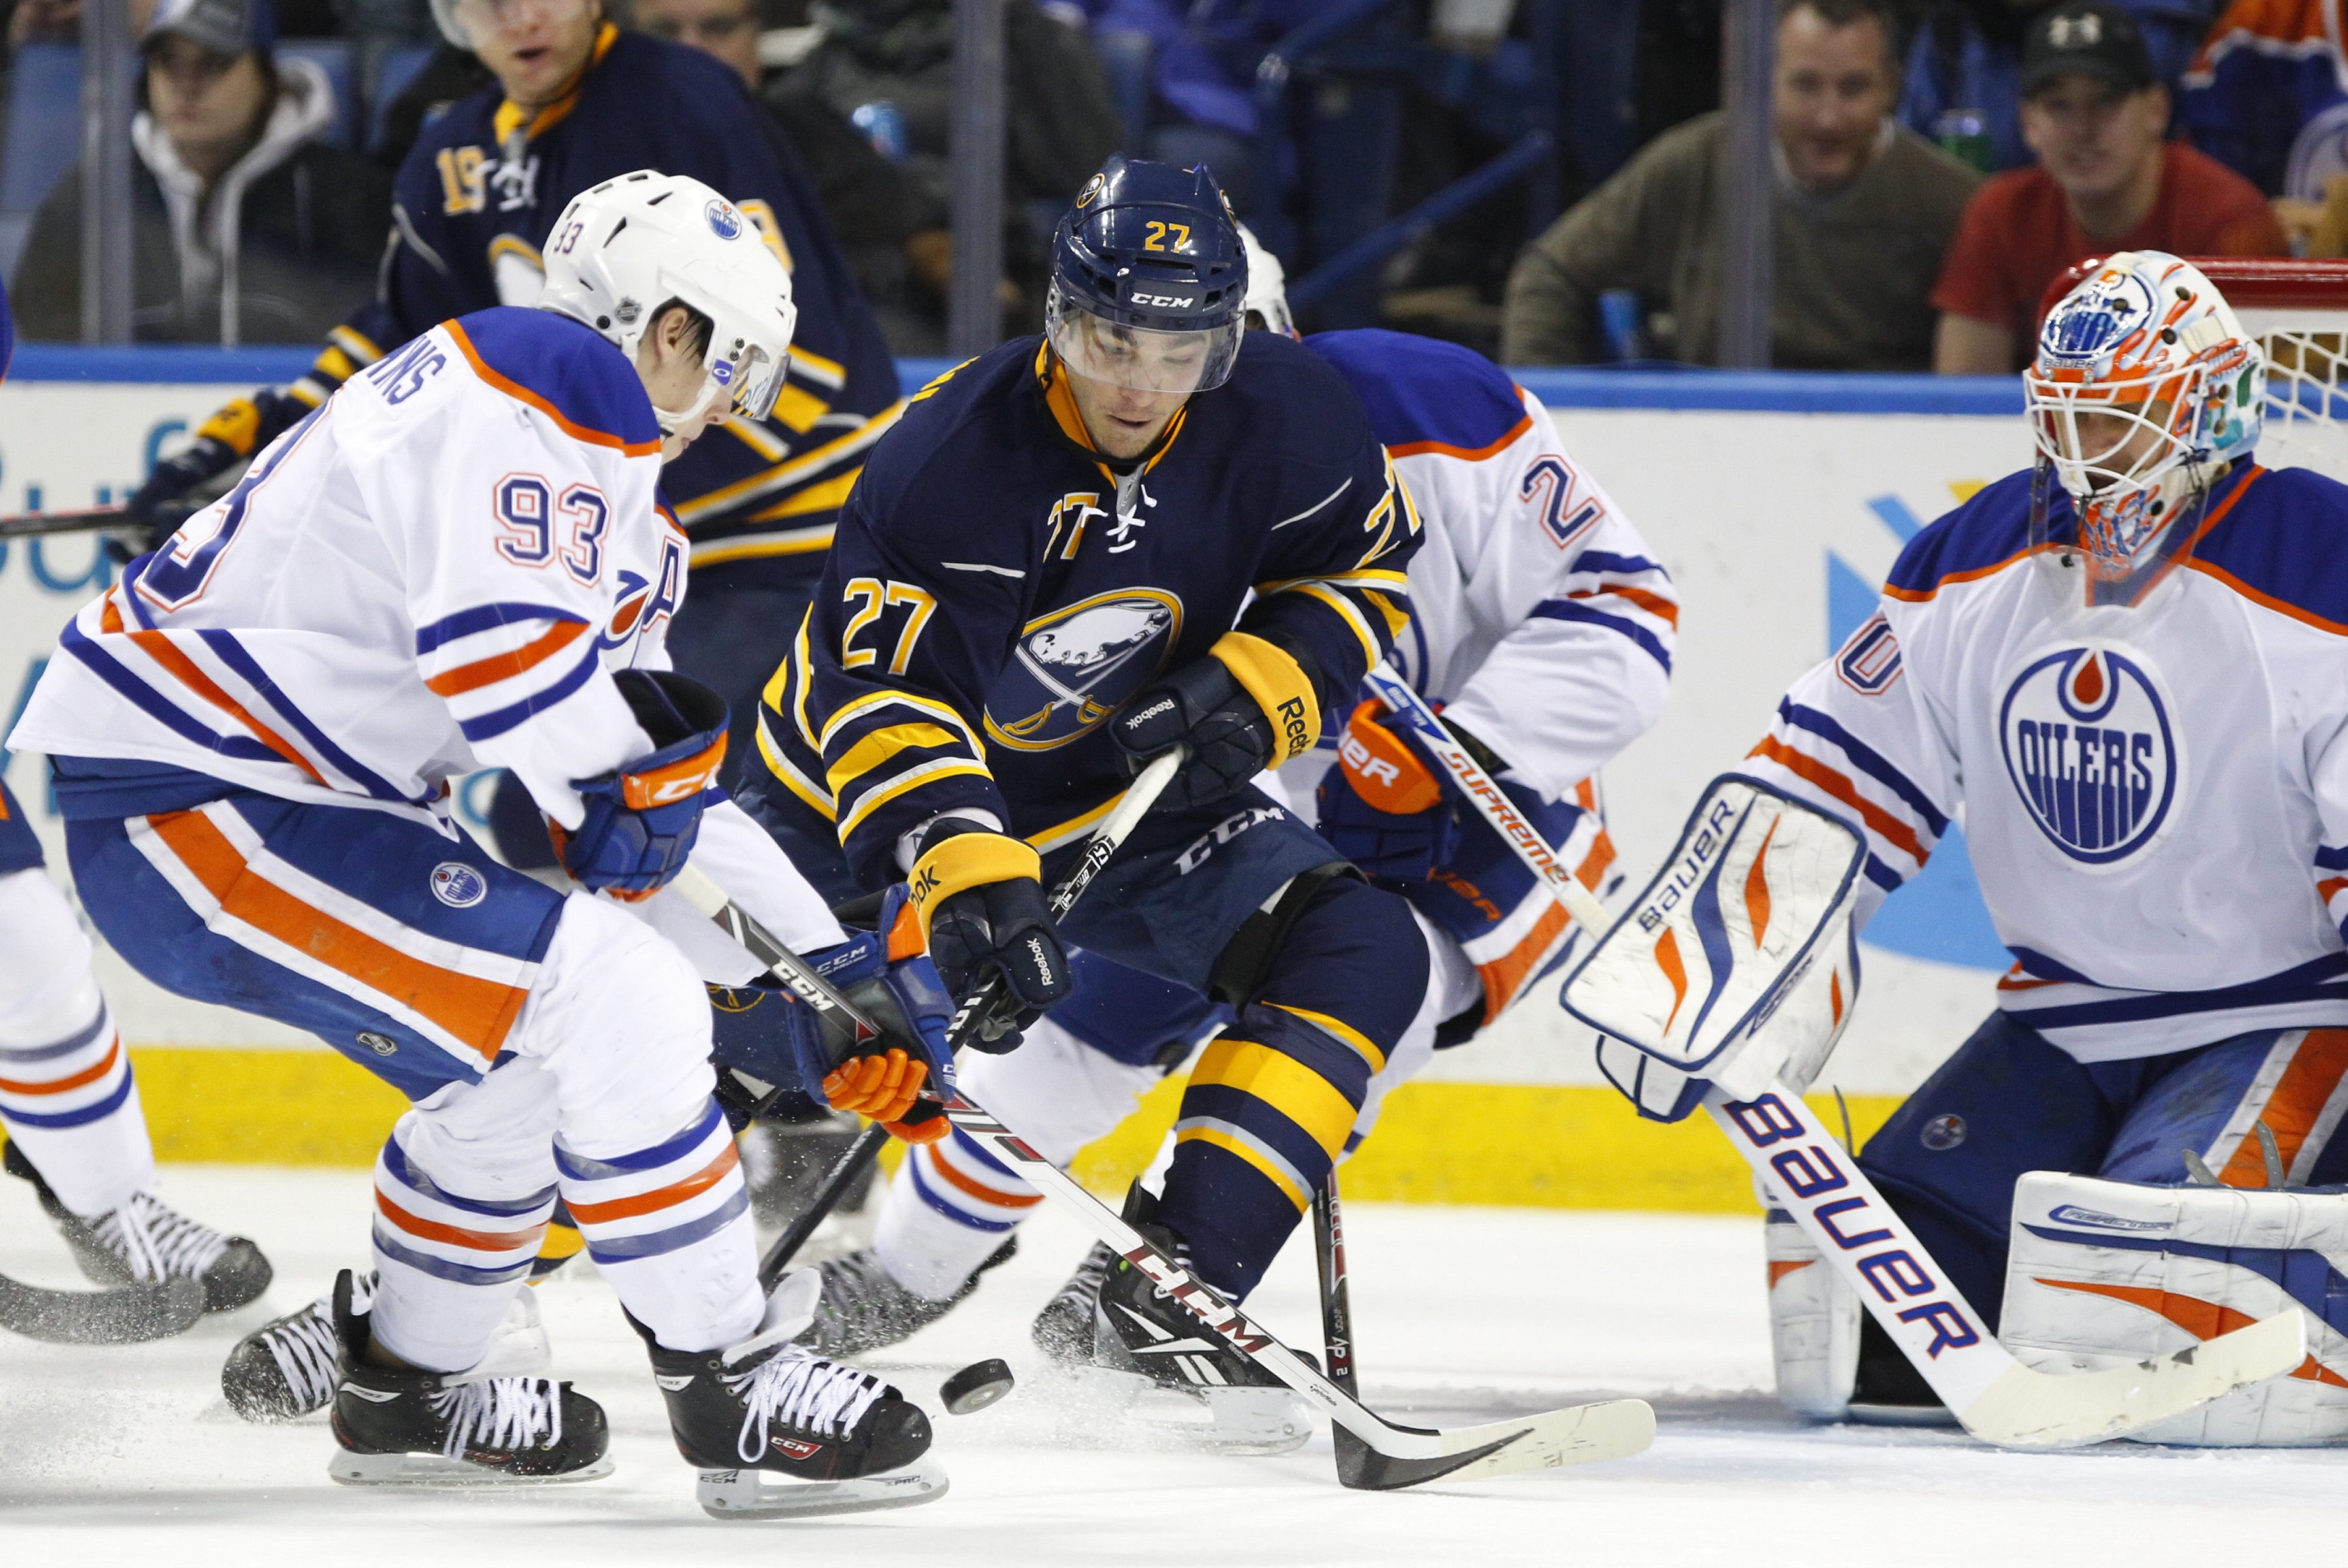 Sabres' forward Matt D'Agostini (27) moves the puck past the Oilers' Ryan Nugent-Hopkins (93) during Monday's game.